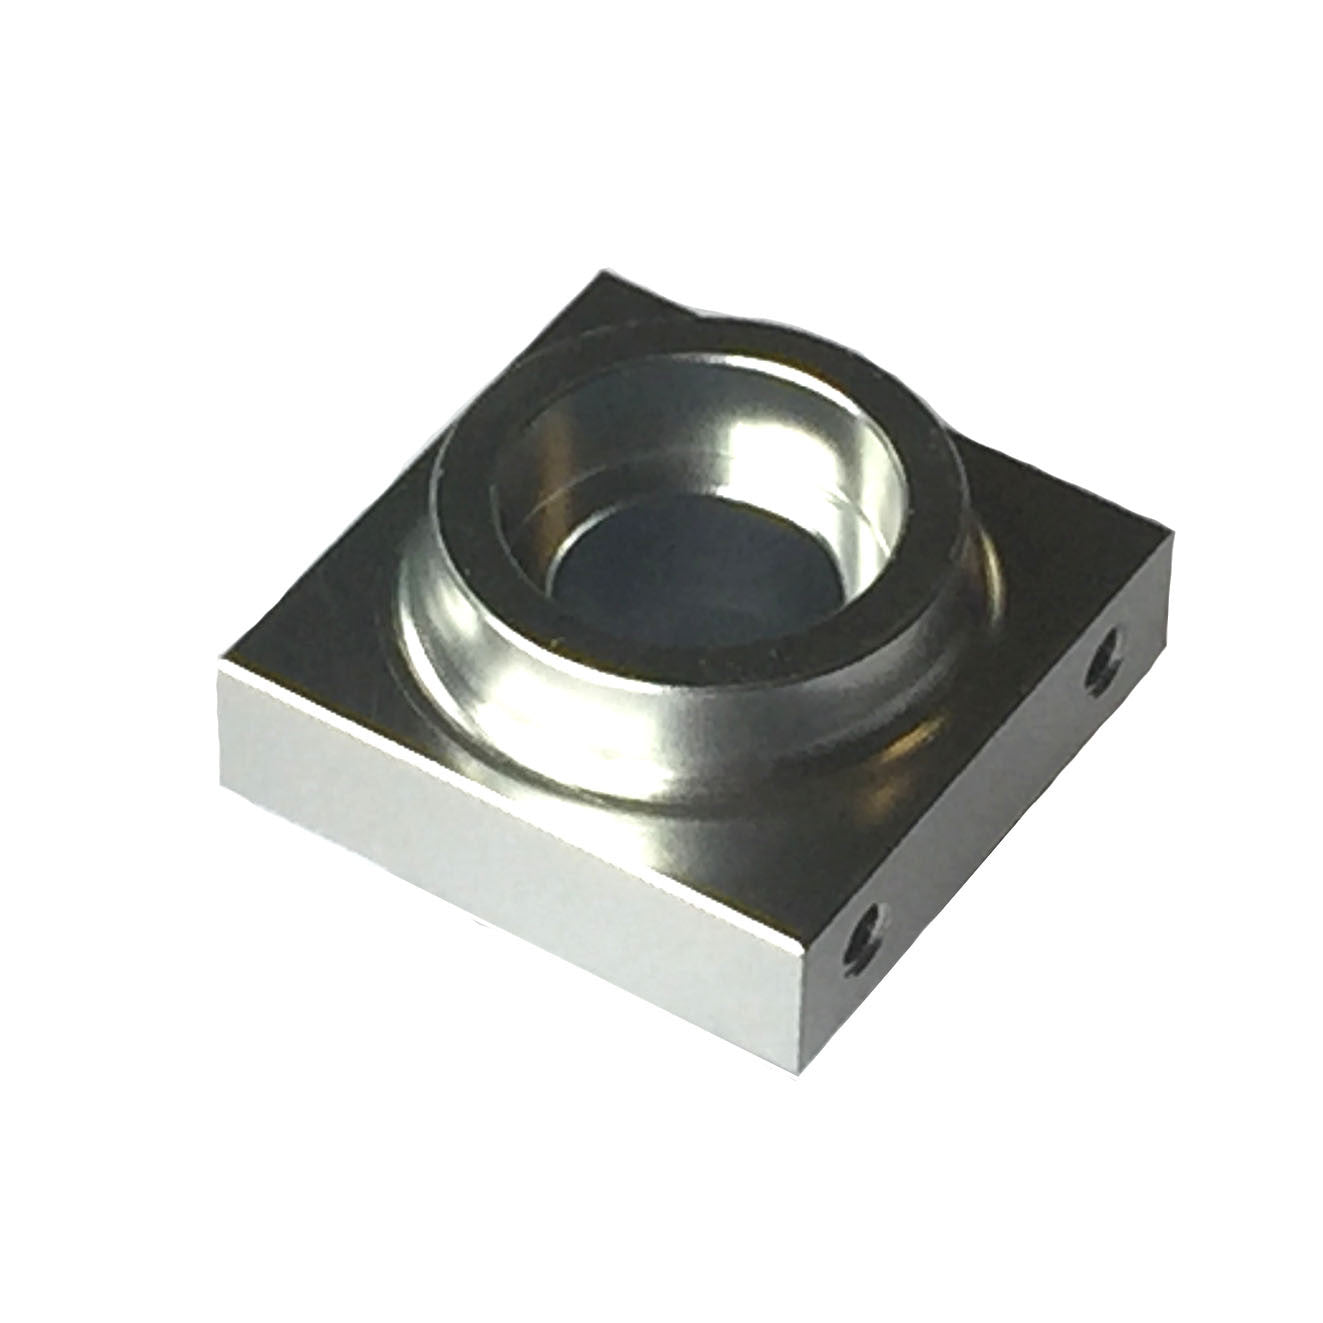 N5C Clutch Bearing Block Aluminum 110-156-Synergy Parts-Helilids RC Hobbies